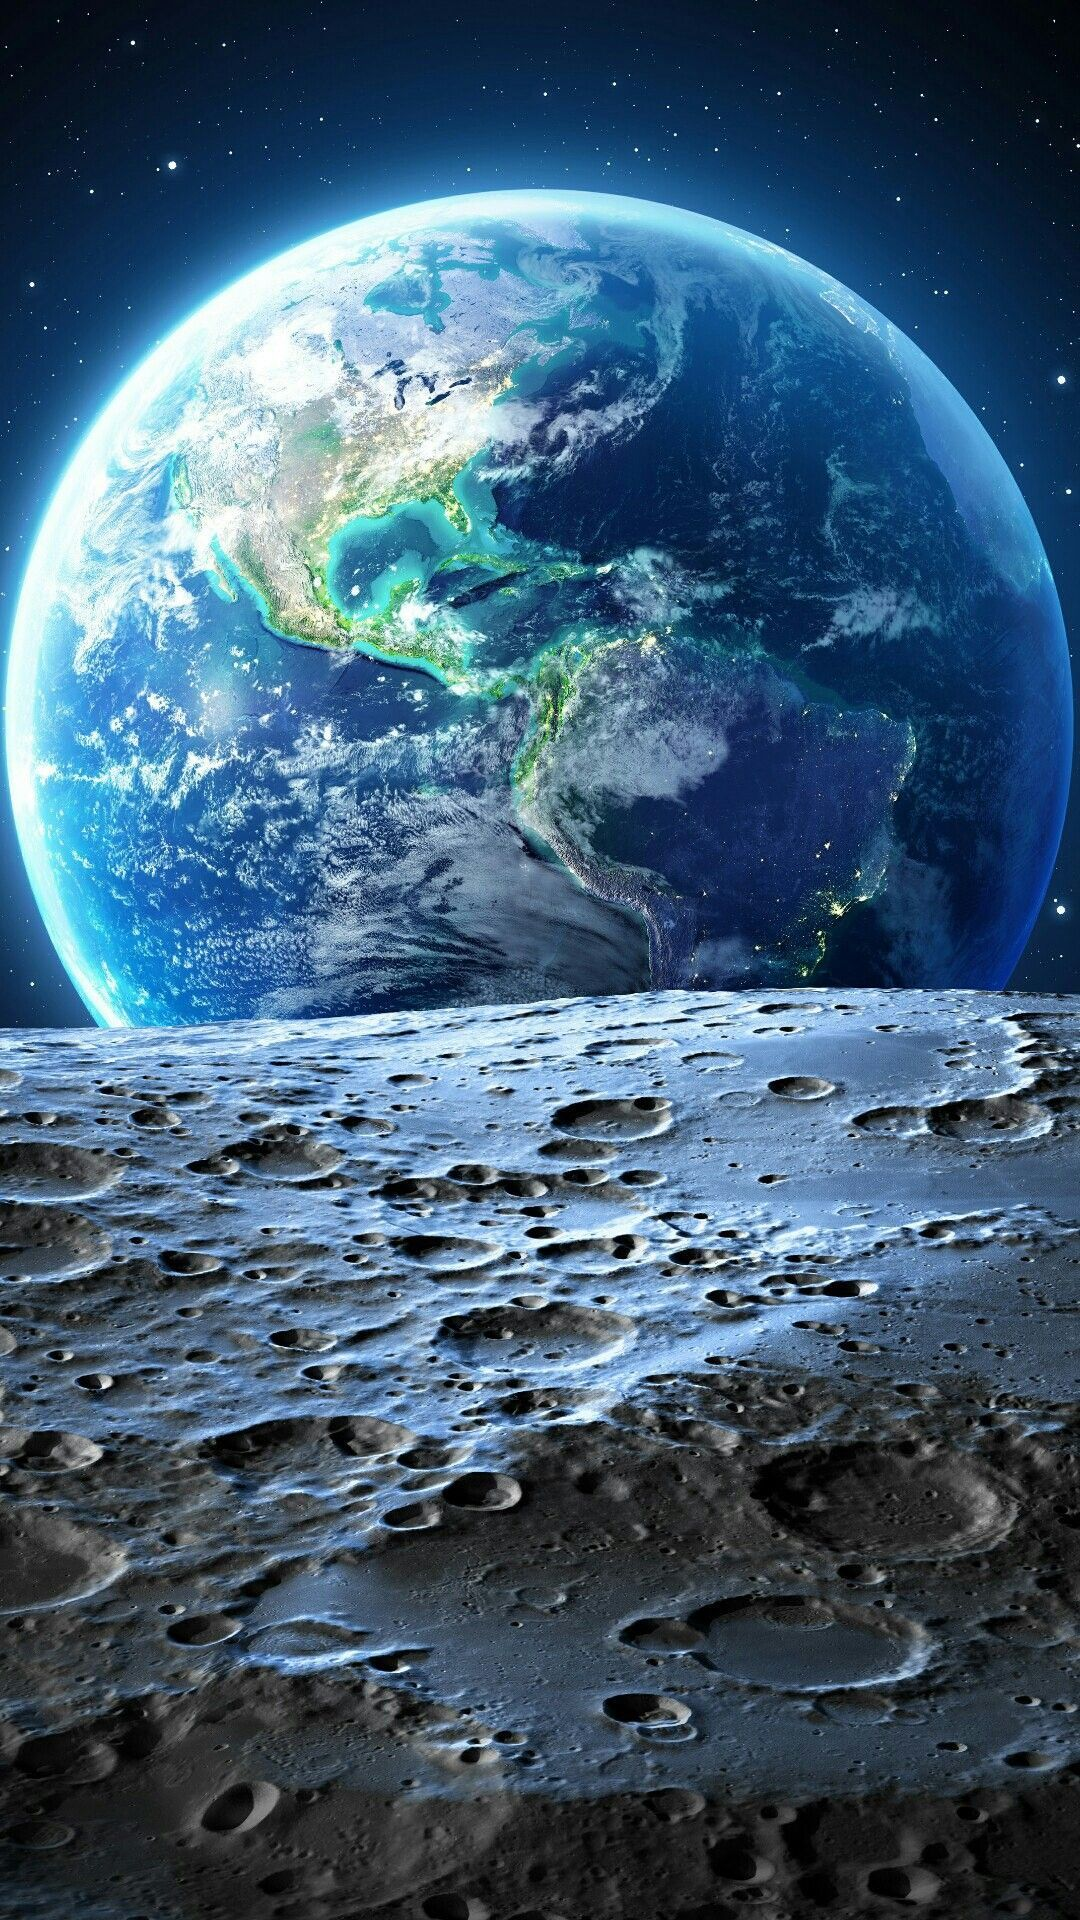 So Cool And Beautiful Wallpaper Earth Wallpaper Space Planets Wallpaper